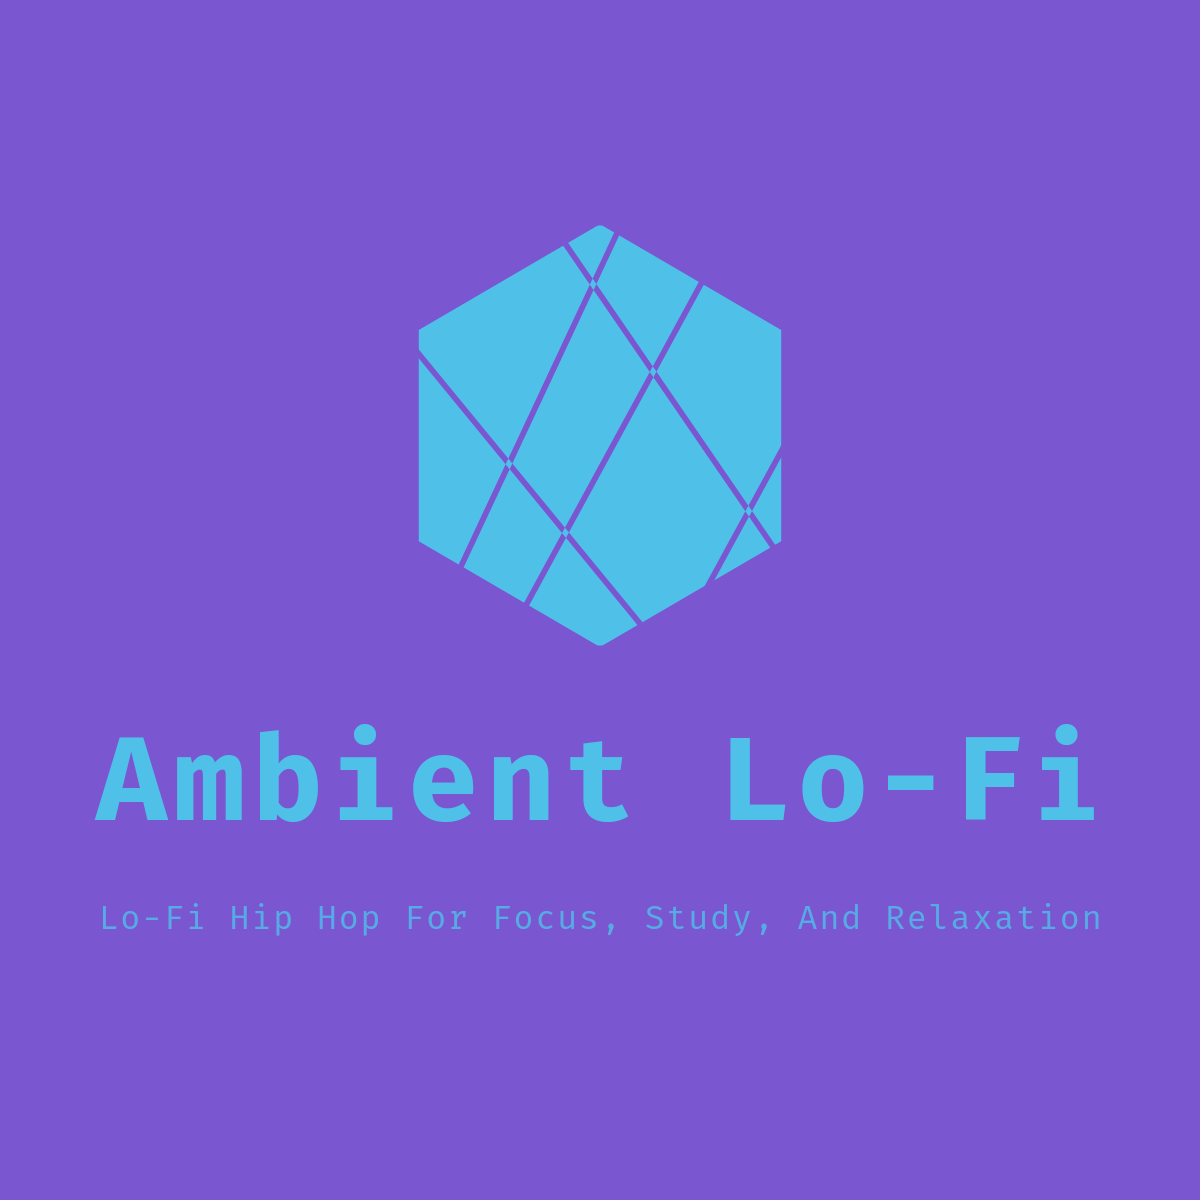 Ambient Lo-Fi: Relaxation and Focus